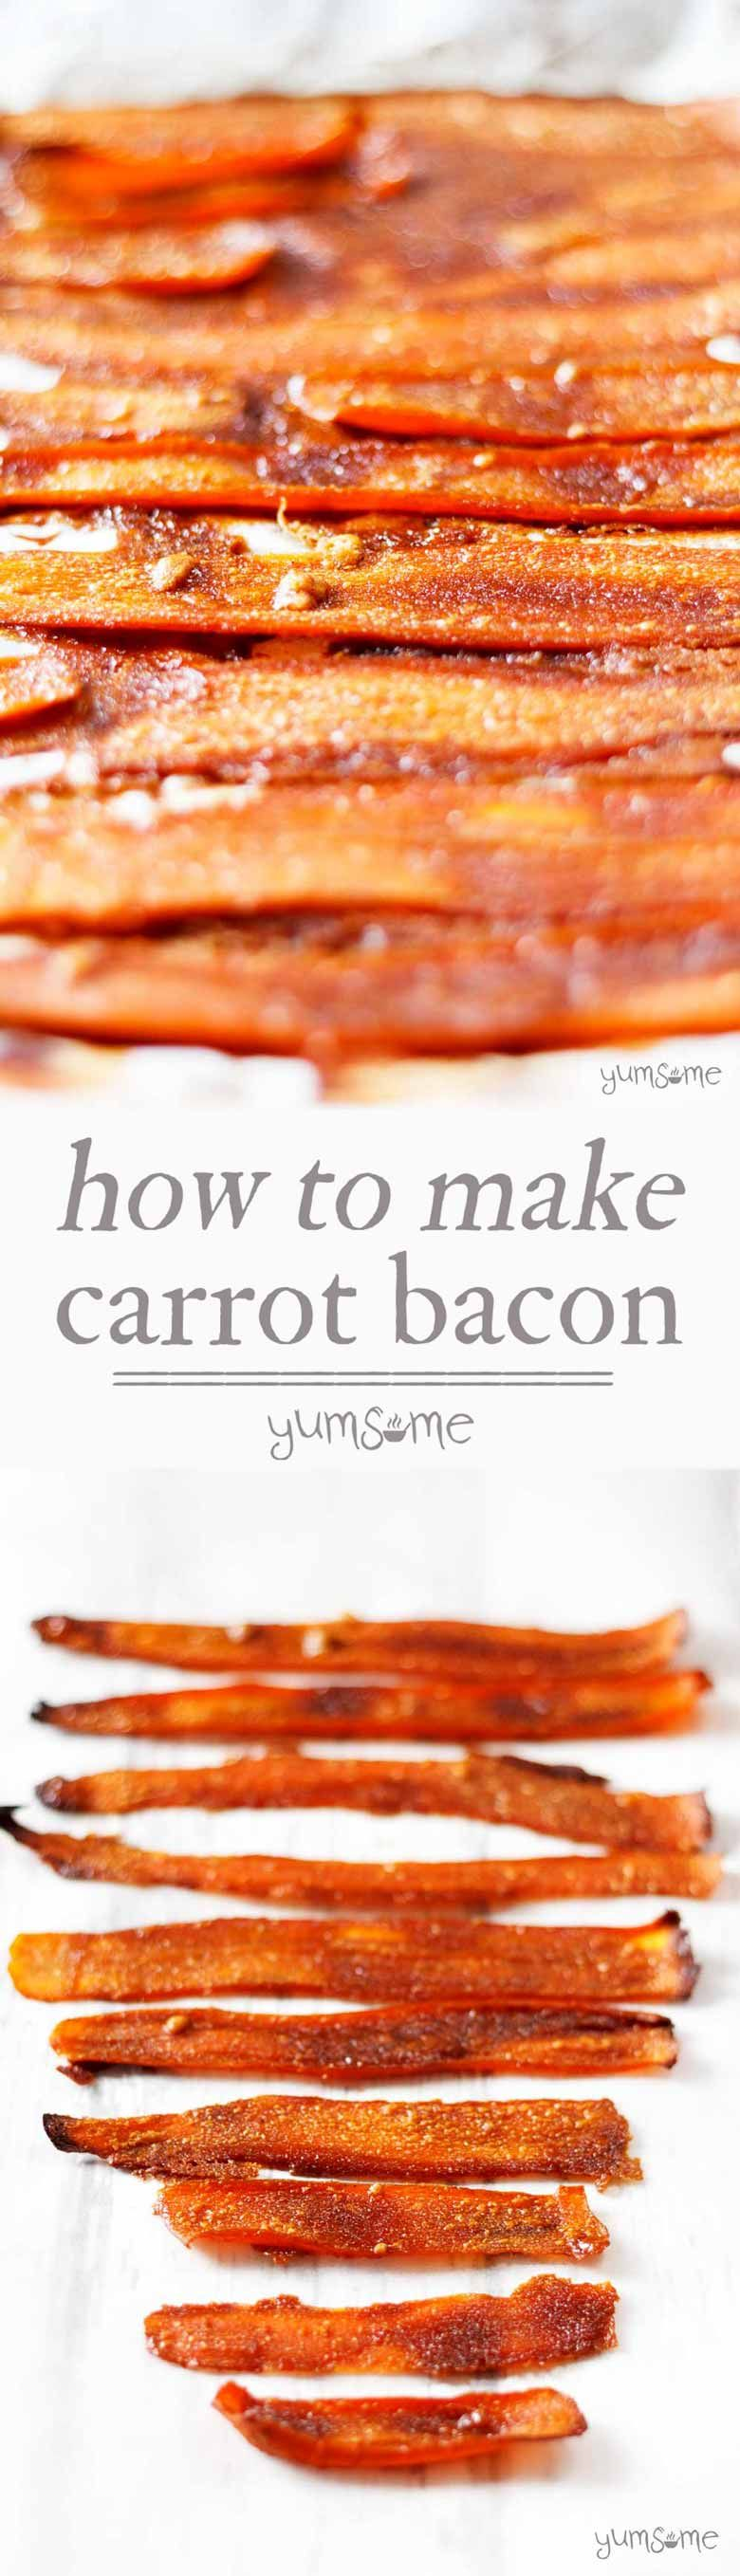 Salty And Sweetly Smoky This Delicious Easy To Make Vegan Bacon Substitute Is Made From Carrots Just Five Other Store Cupboard Ingredients